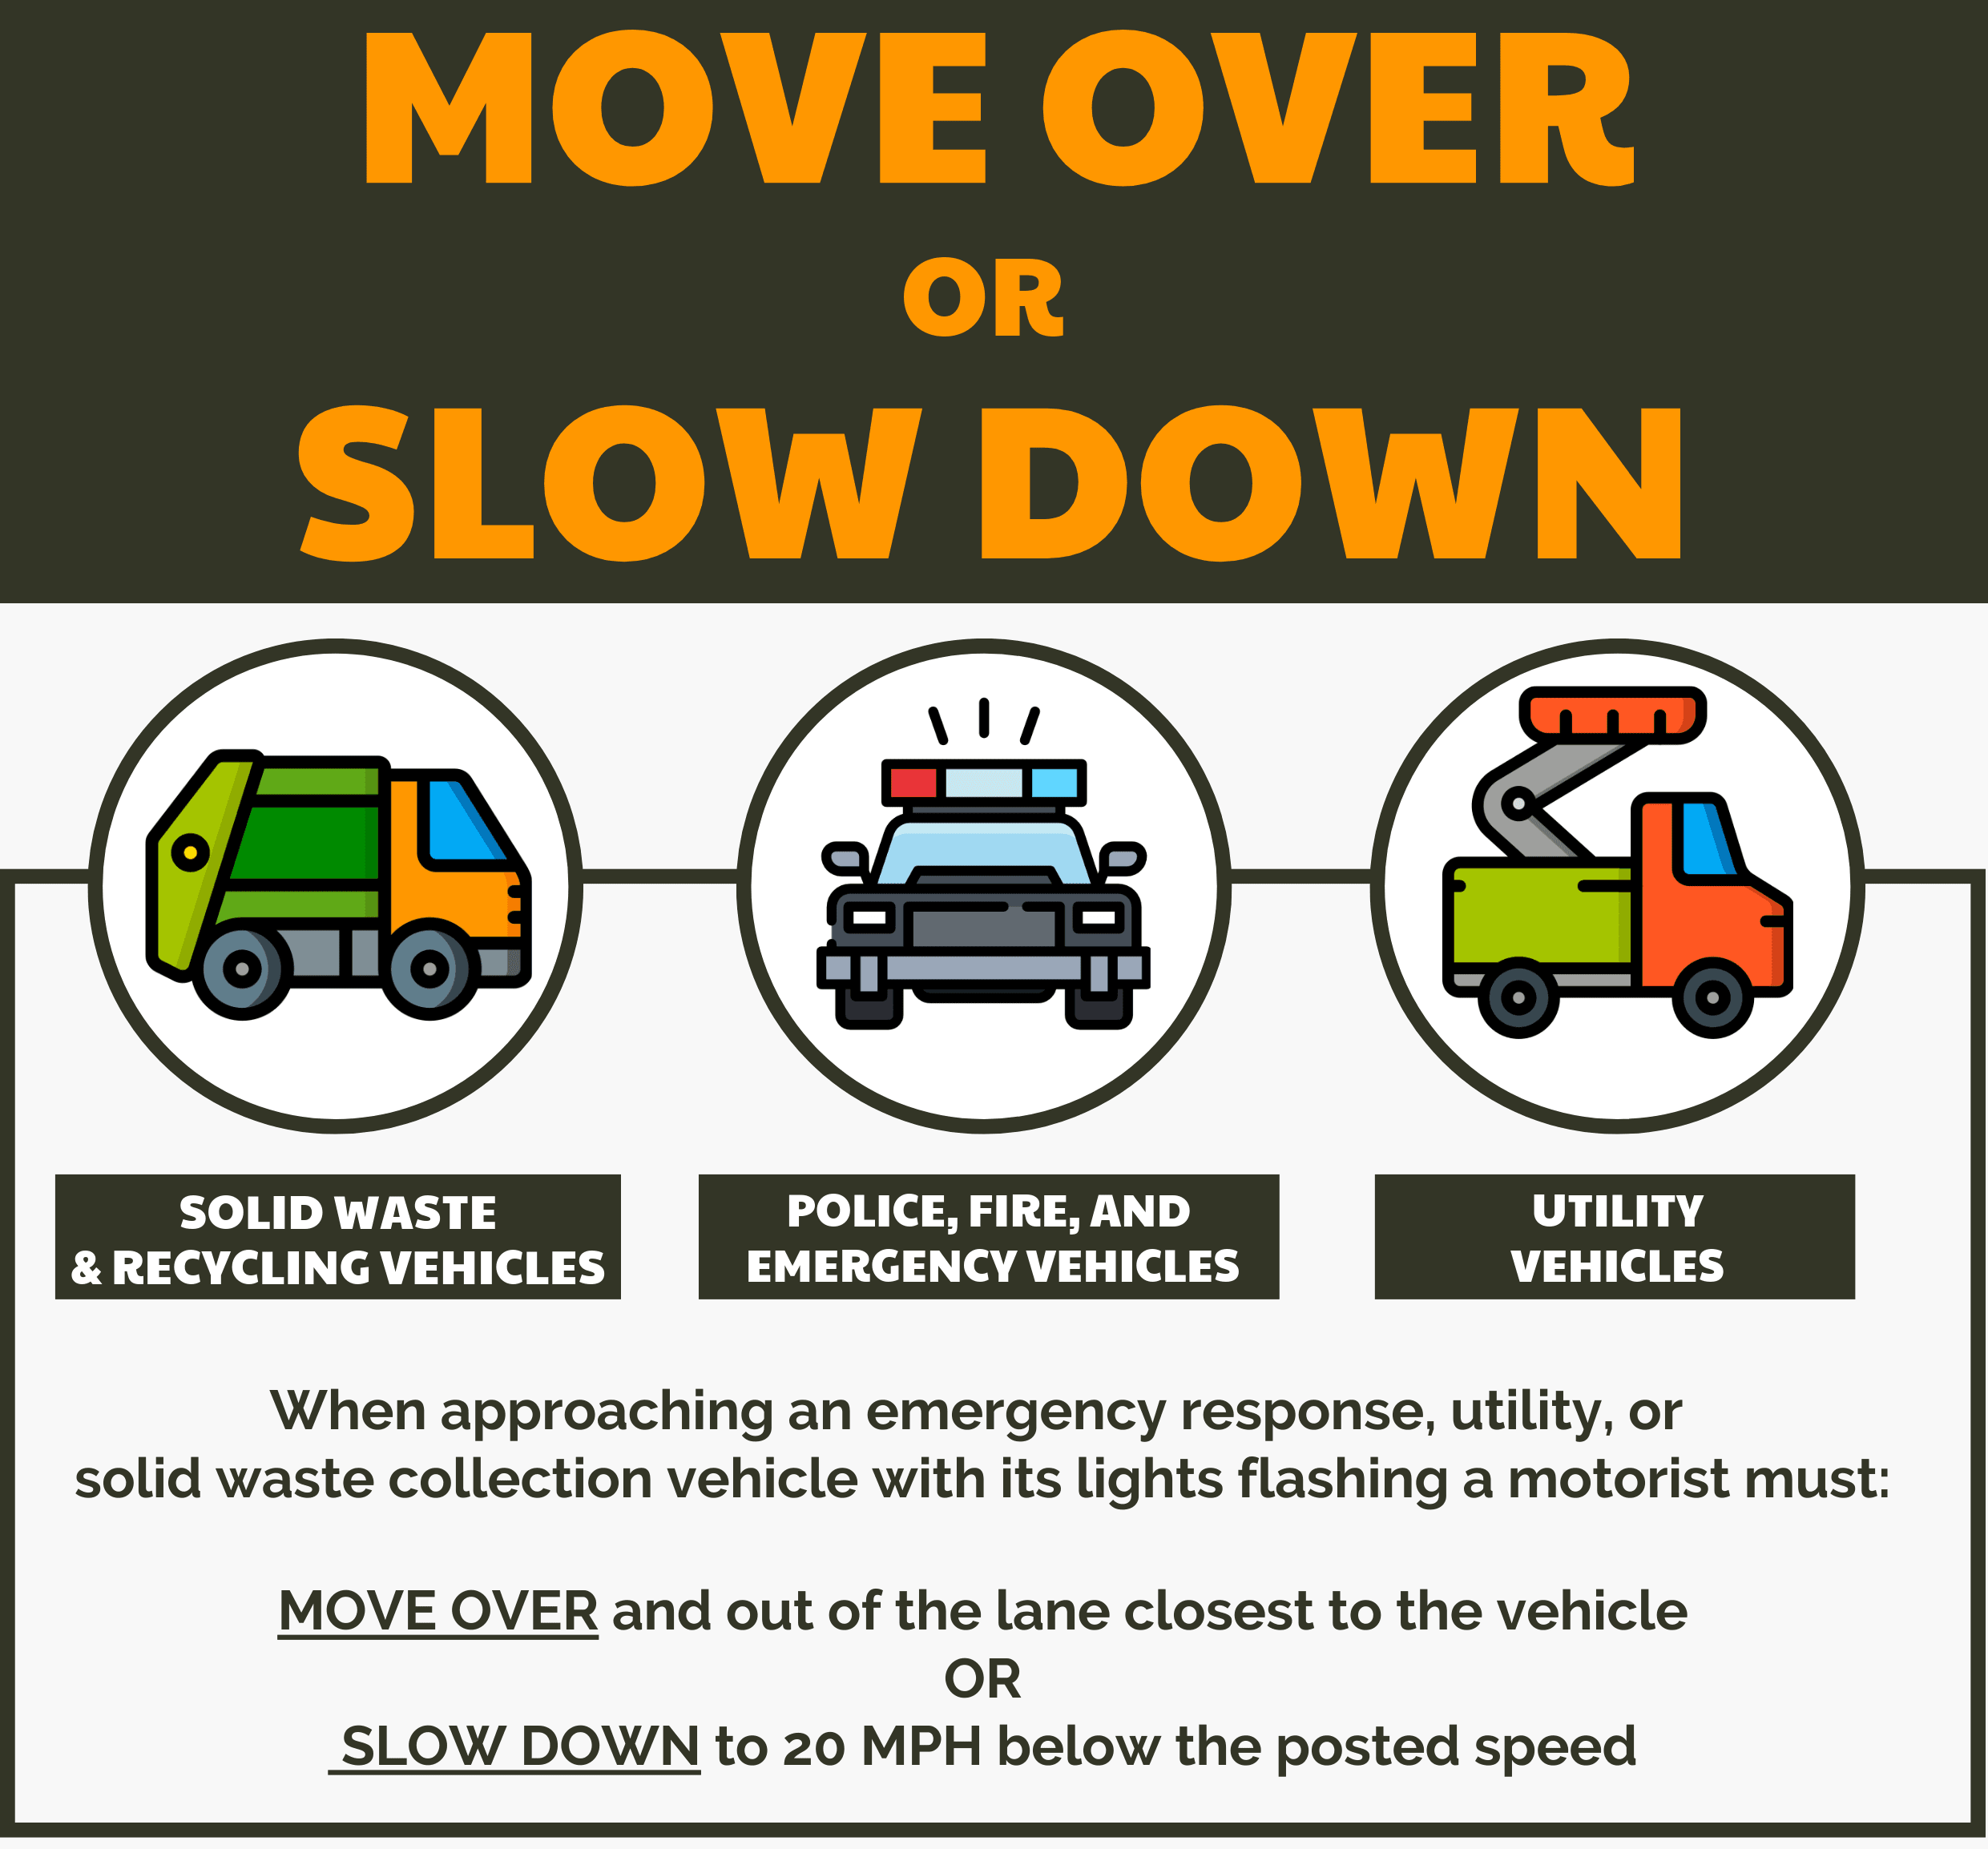 Move Over or Slow Down